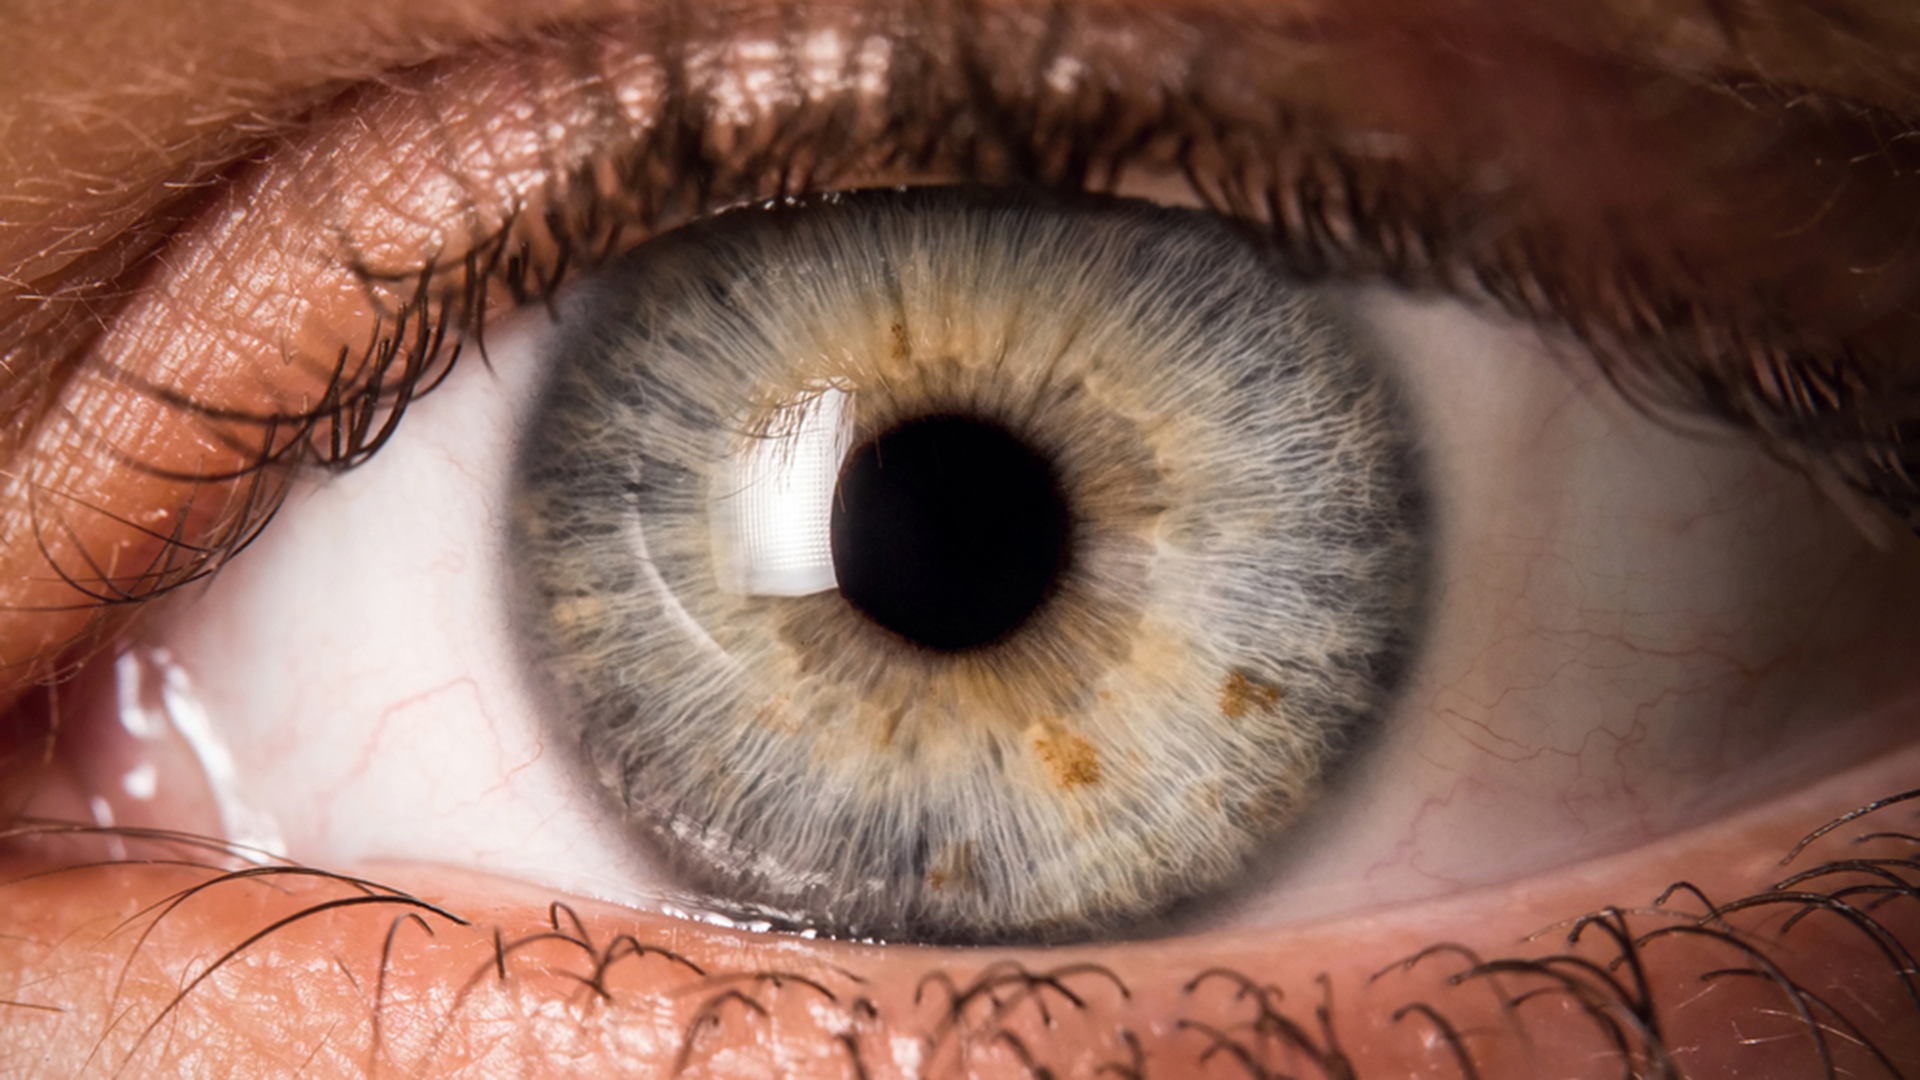 5 Eye Symptoms You Should Never Ignore